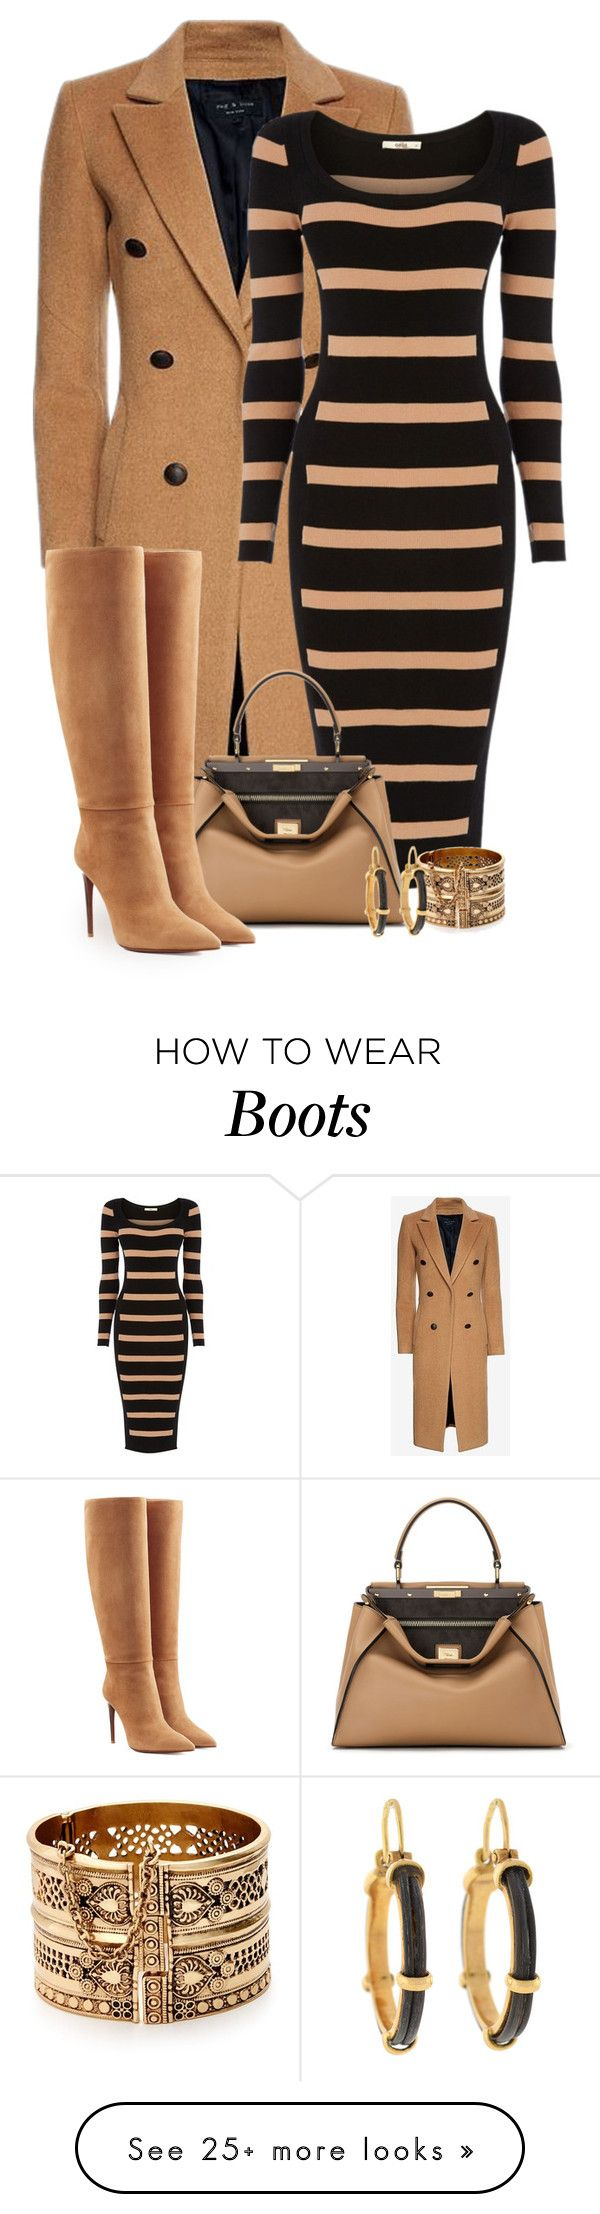 """""""Camel and Black"""" by terry-tlc on Polyvore featuring rag & bone, Oasis, Fendi, Ralph Lauren Collection and Lucky Brand"""